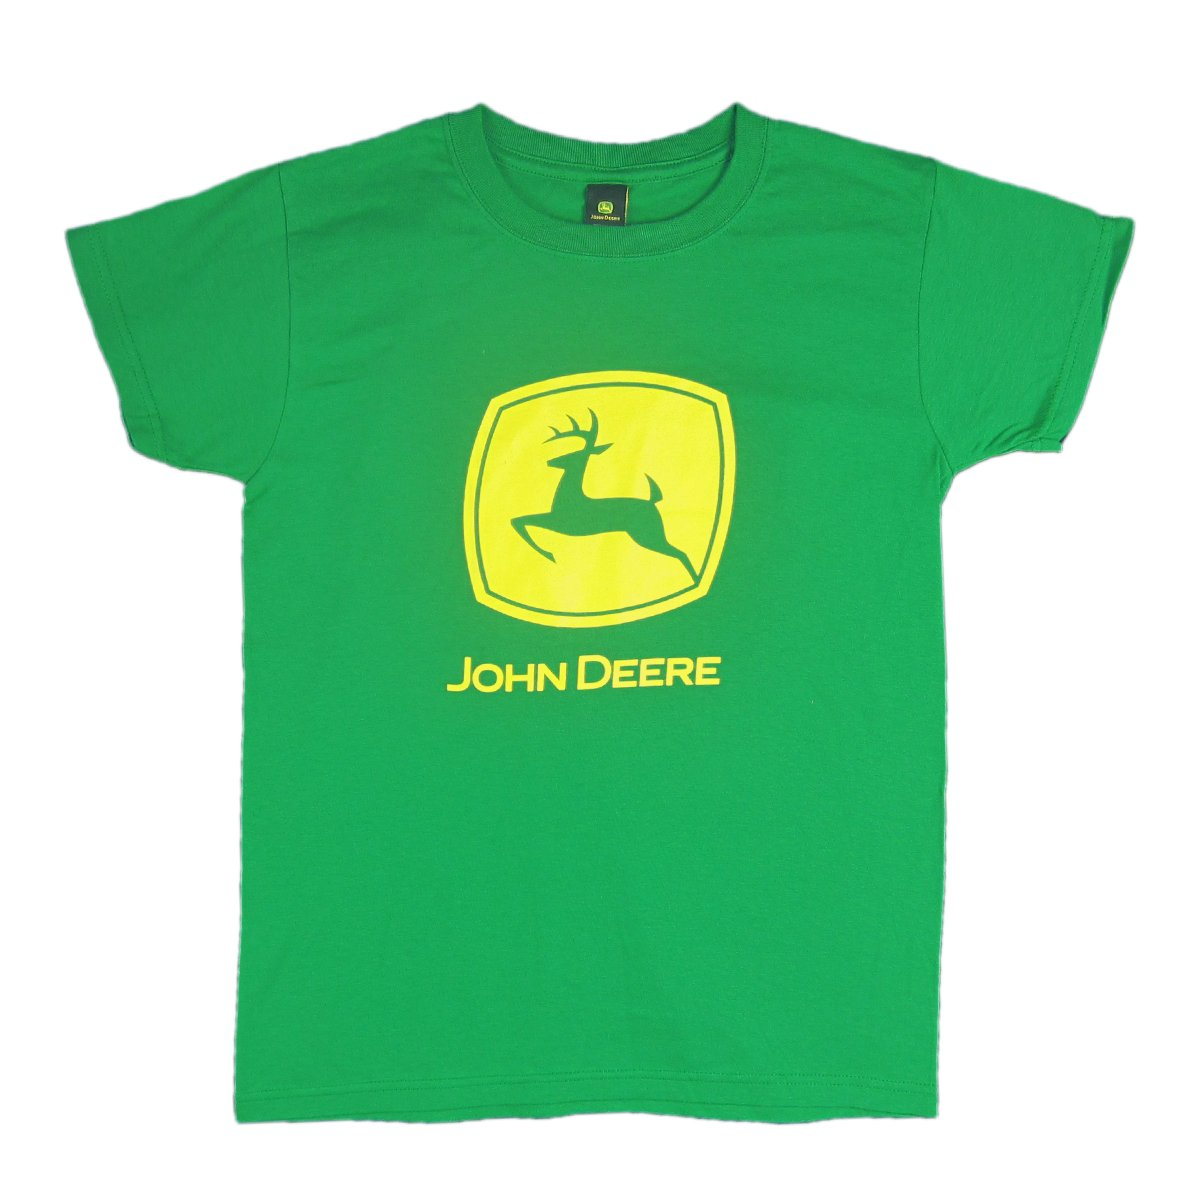 JOHN DEERE YELLOW T-SHIRT M and XL SIZES AVAIL NEW L